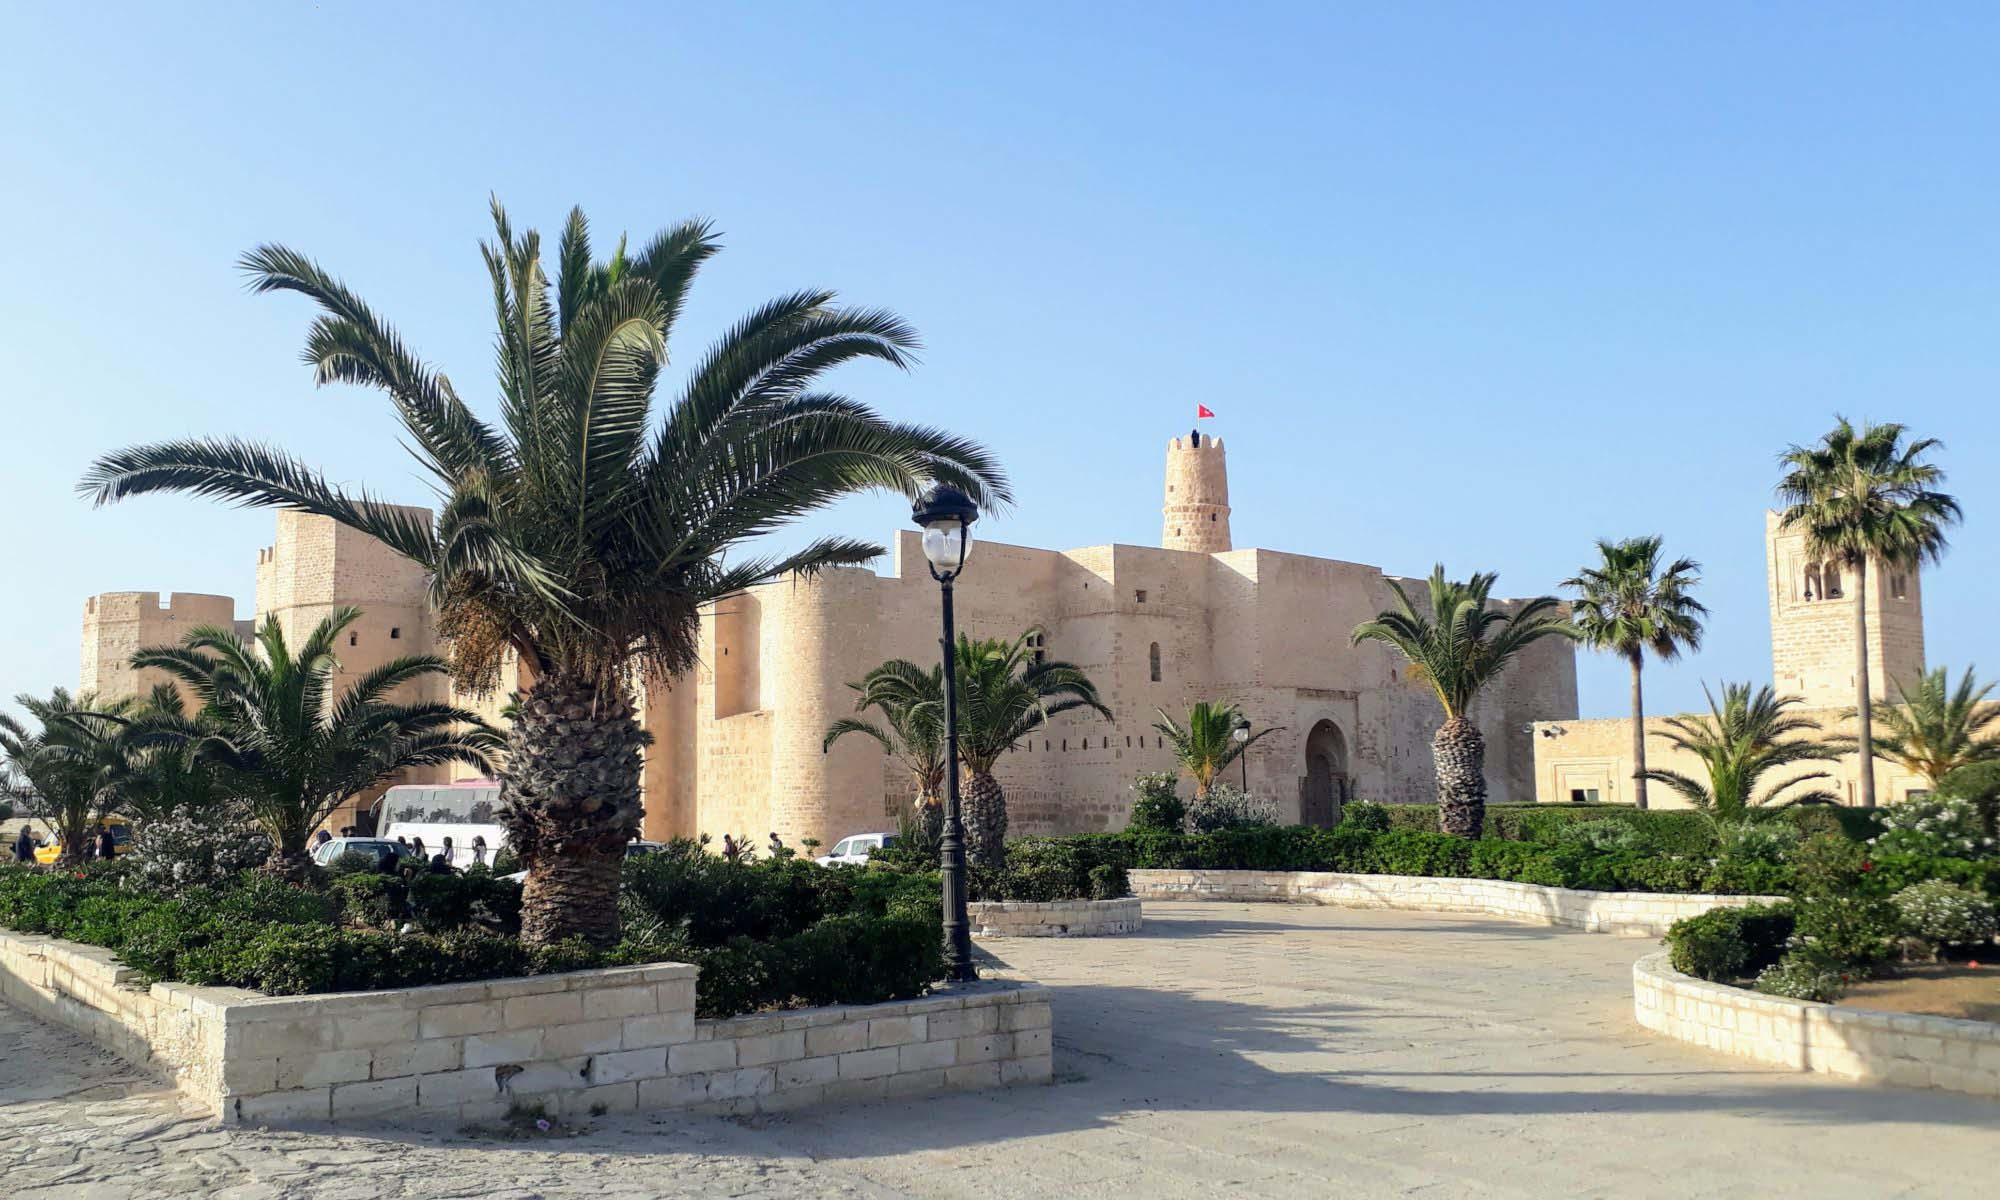 Monastir: Relaxed Resort with Significant Ribat